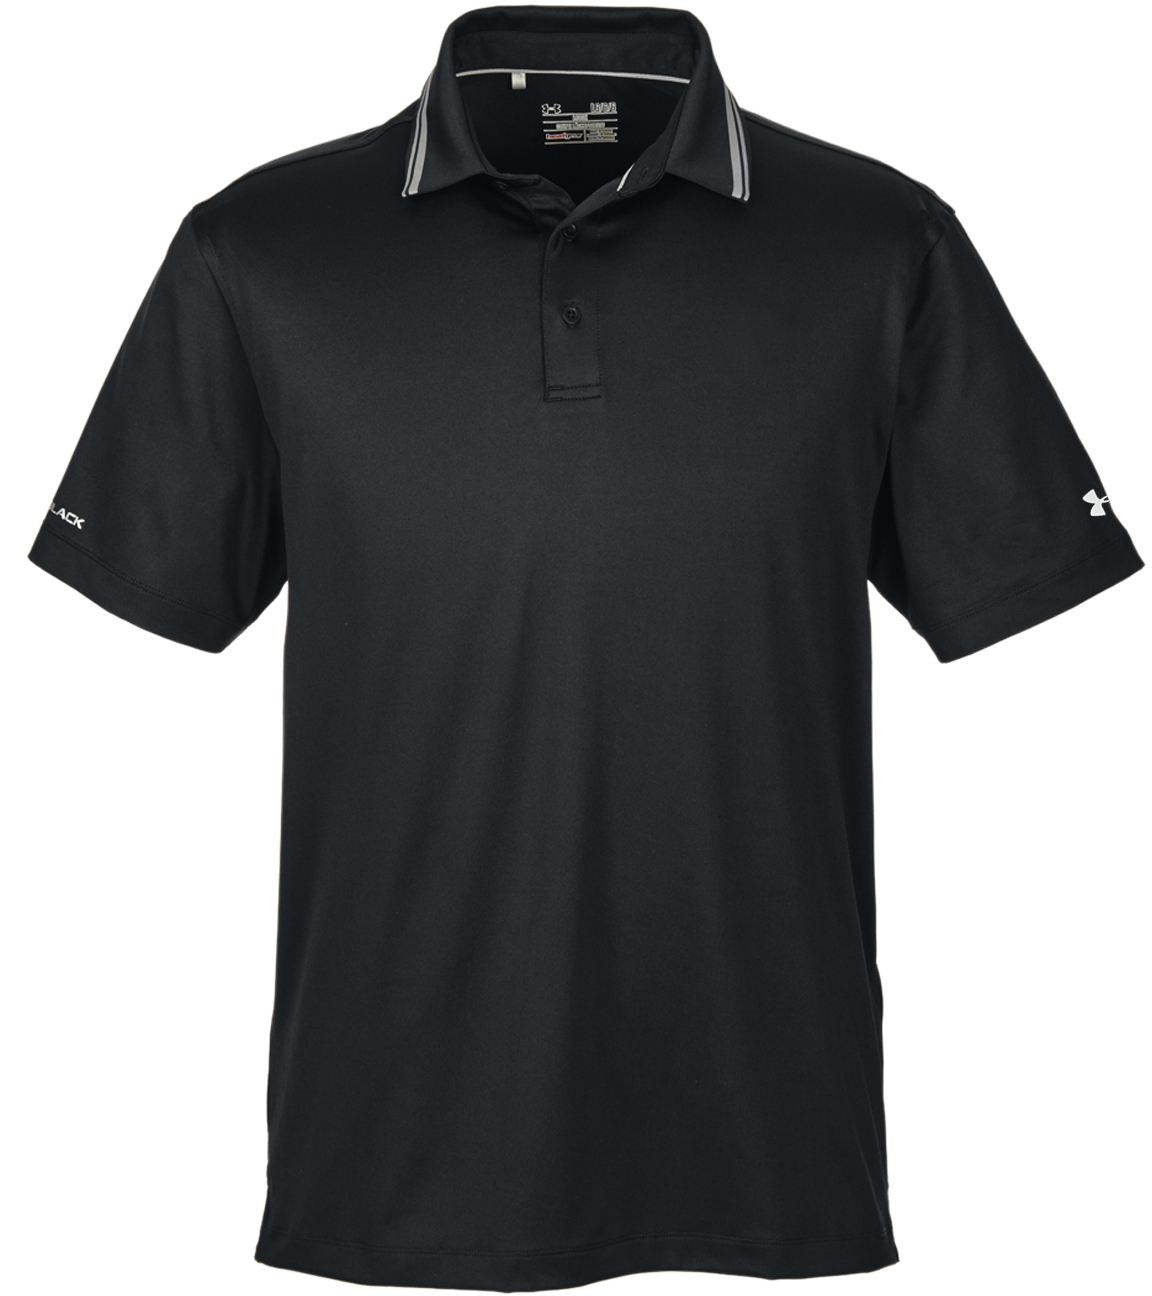 Under armour men 39 s corporate coldblack address polo for Under armor business shirts